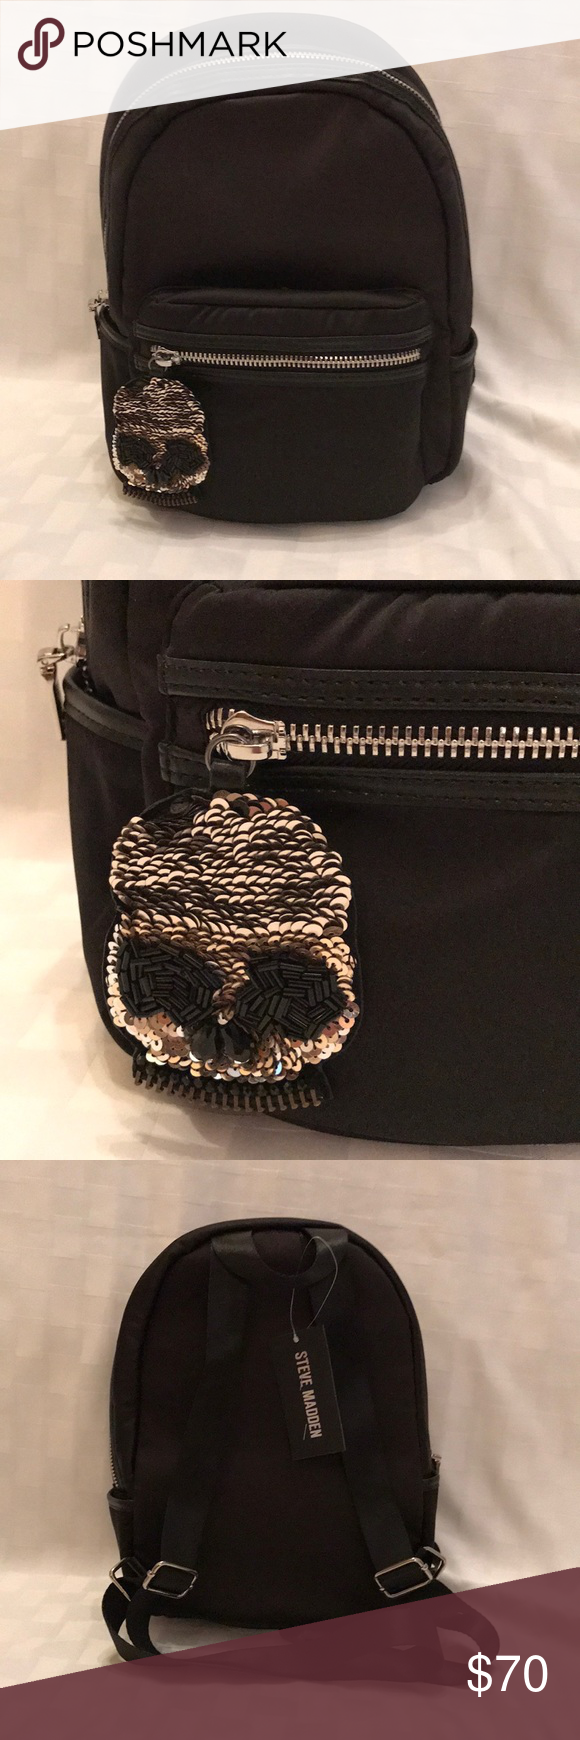 fbed886e47 Steve Madden Mini backpack BNWT Steve Madden mini backpack. Awesome  exterior with the skull attachment